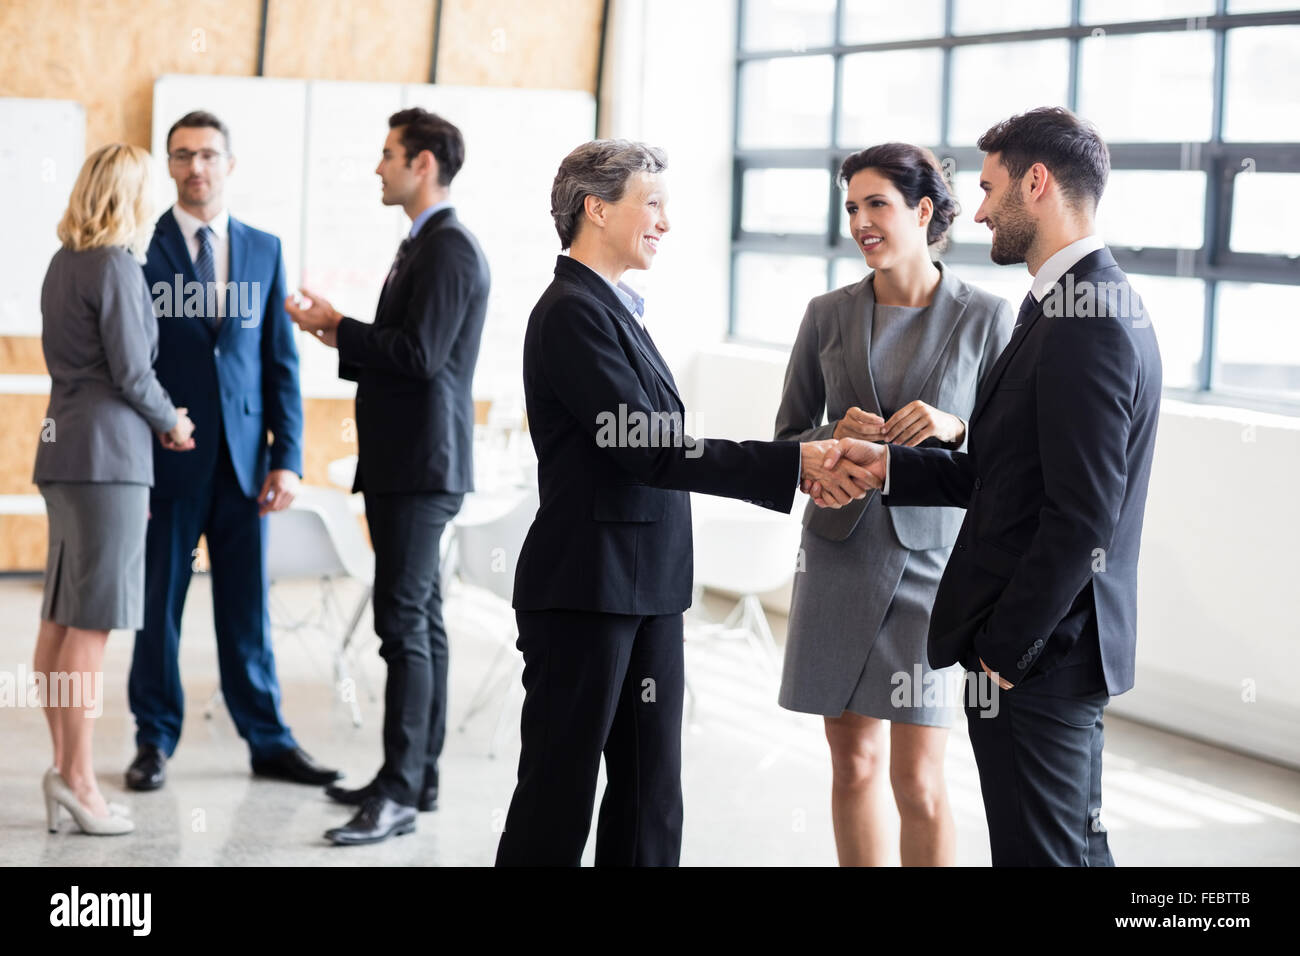 Business people standing and talking - Stock Image